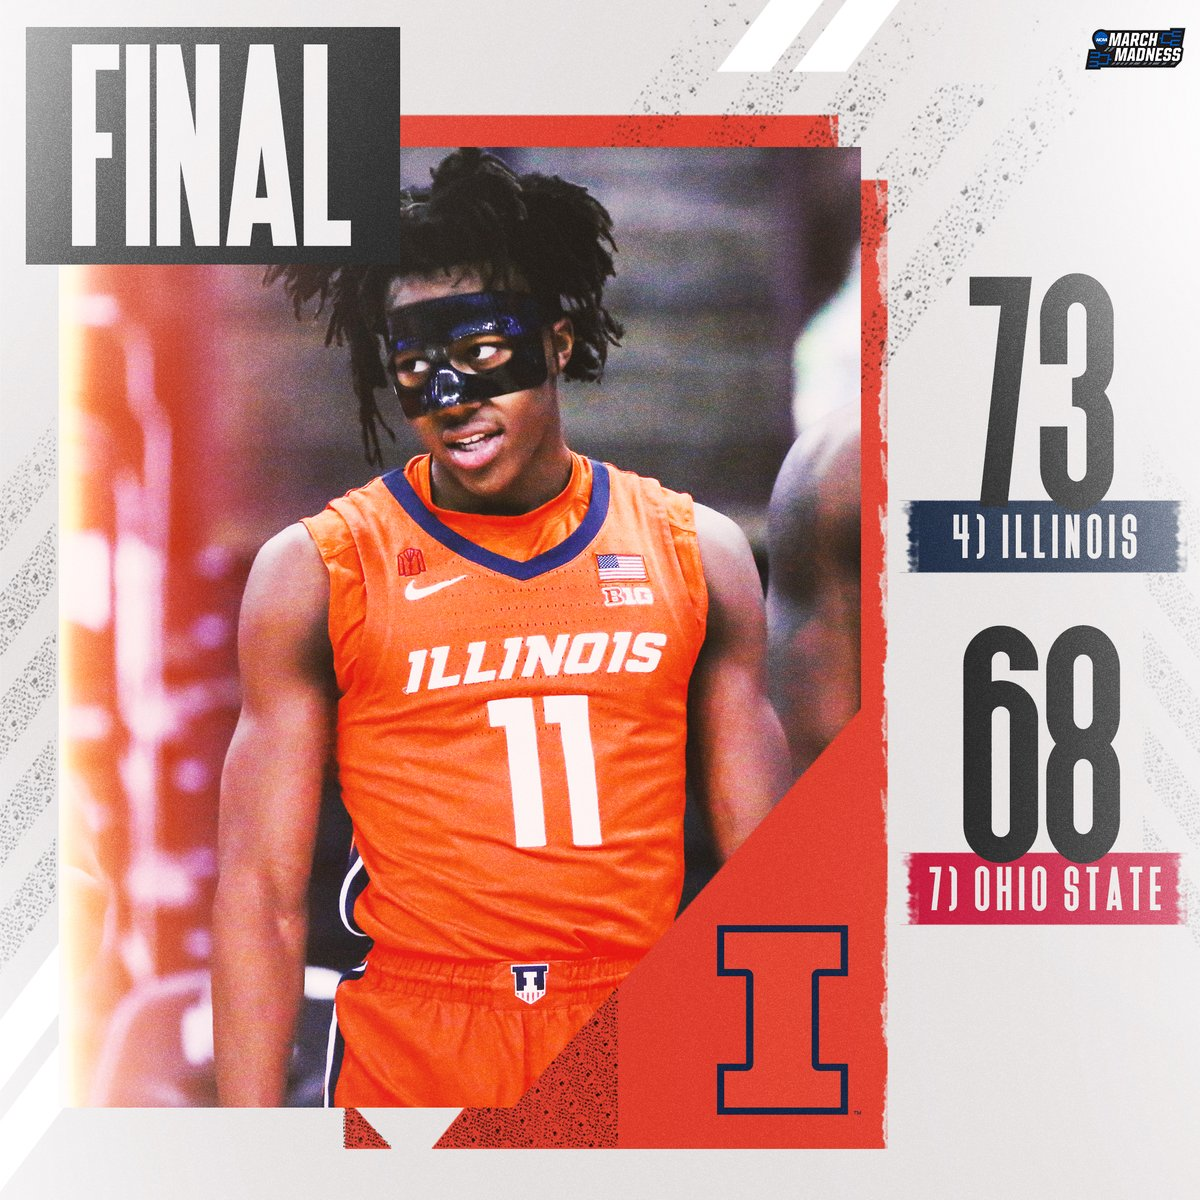 @marchmadness's photo on #Illini